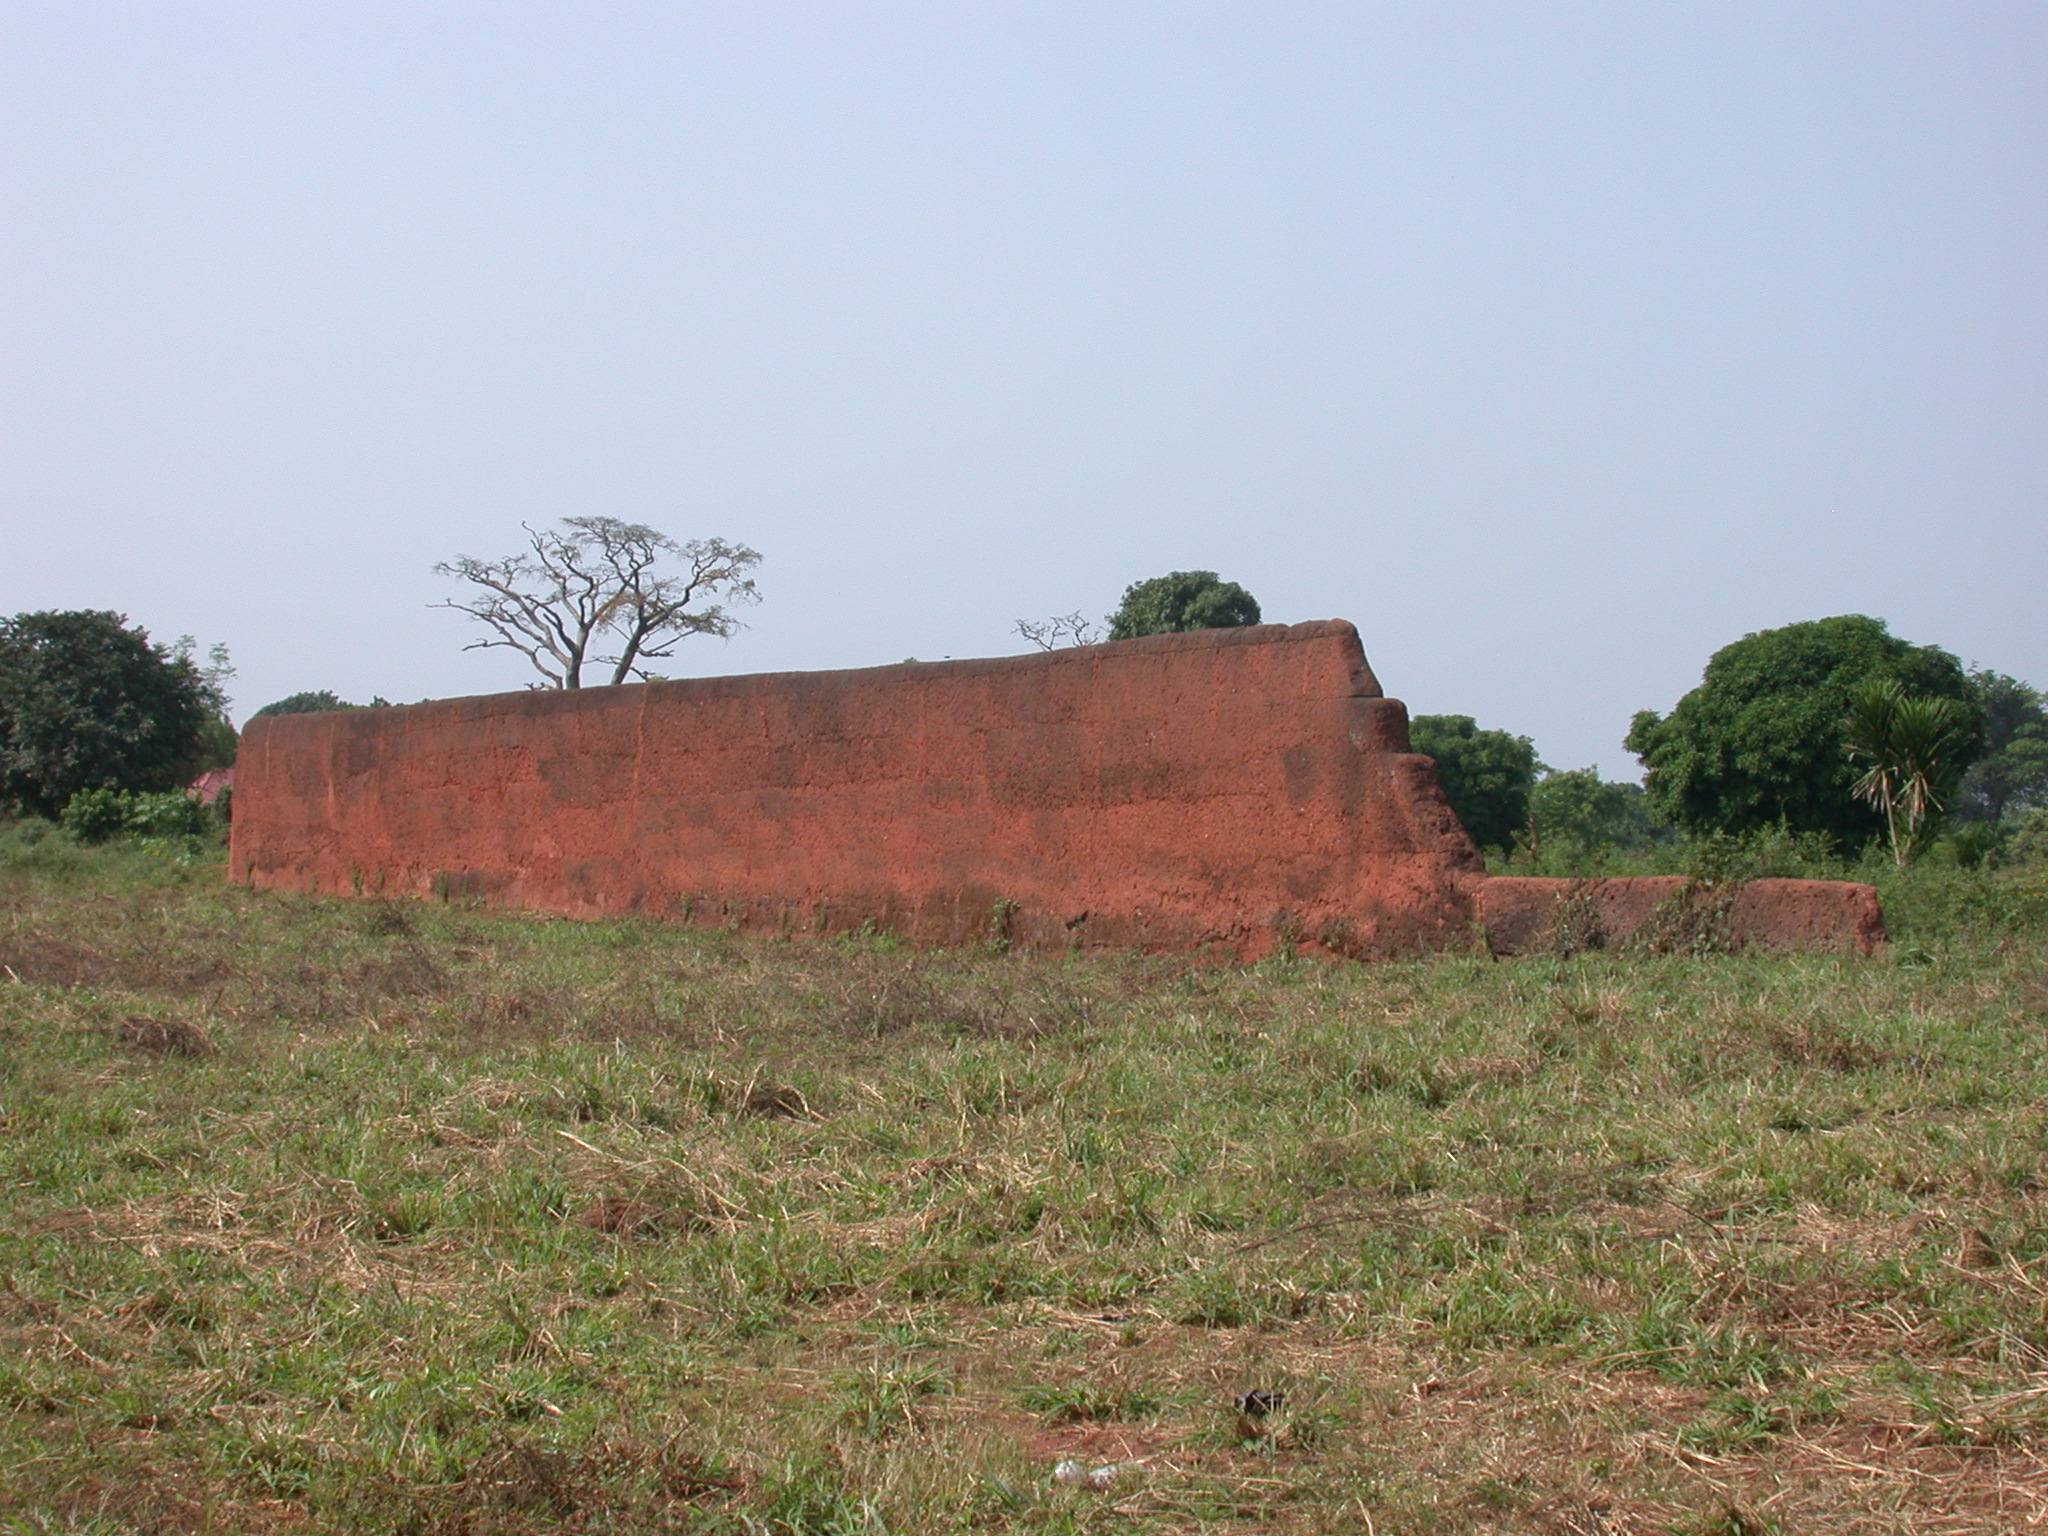 Ruins of Palace of King Agadja, Abomey, Benin